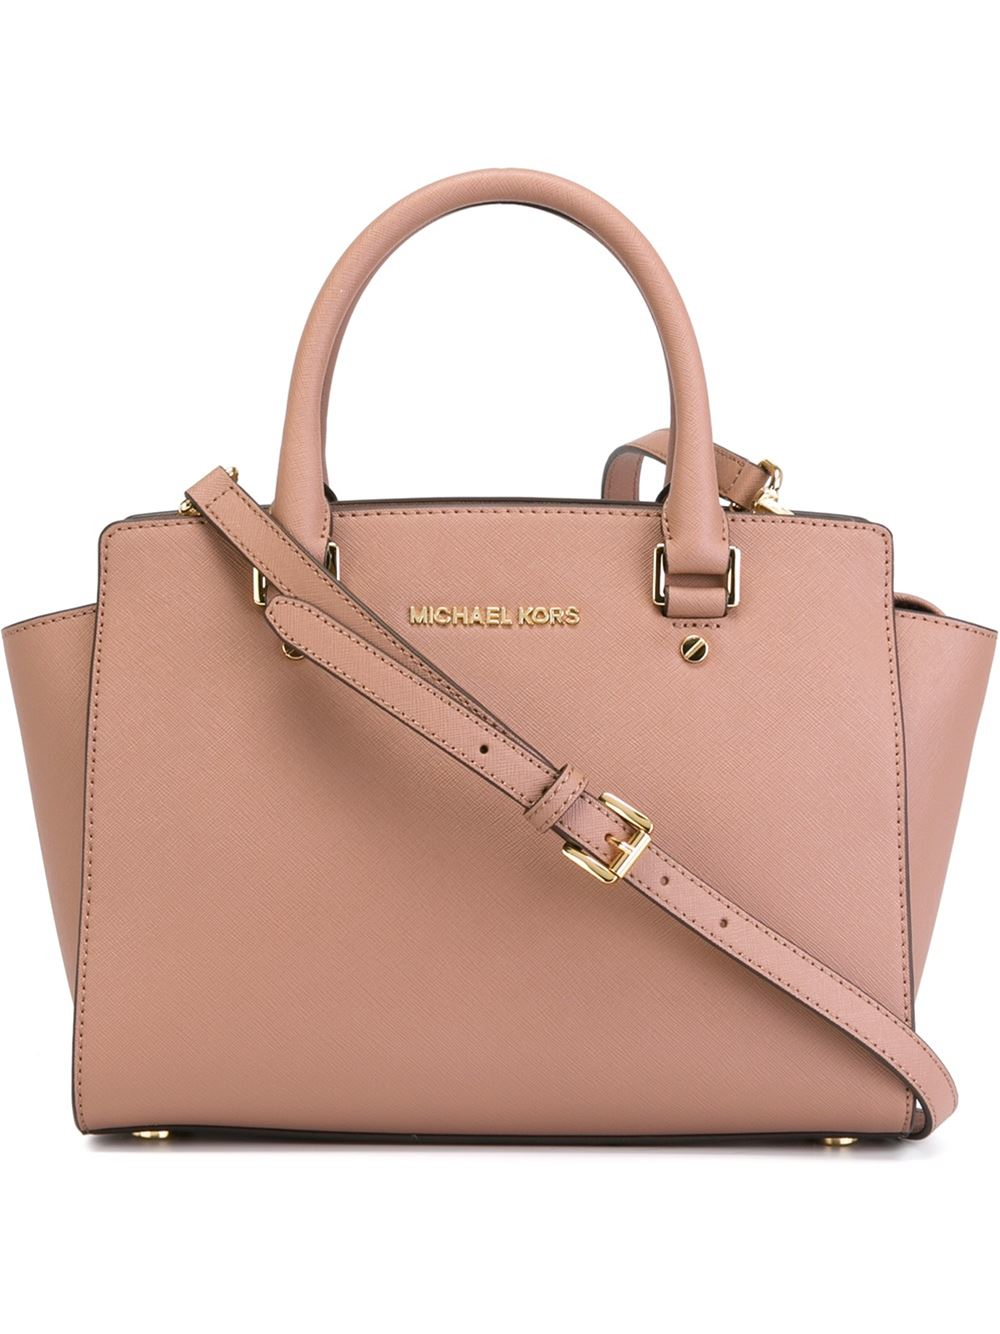 Gallery Previously Sold At Tessabit Women S Michael By Kors Selma